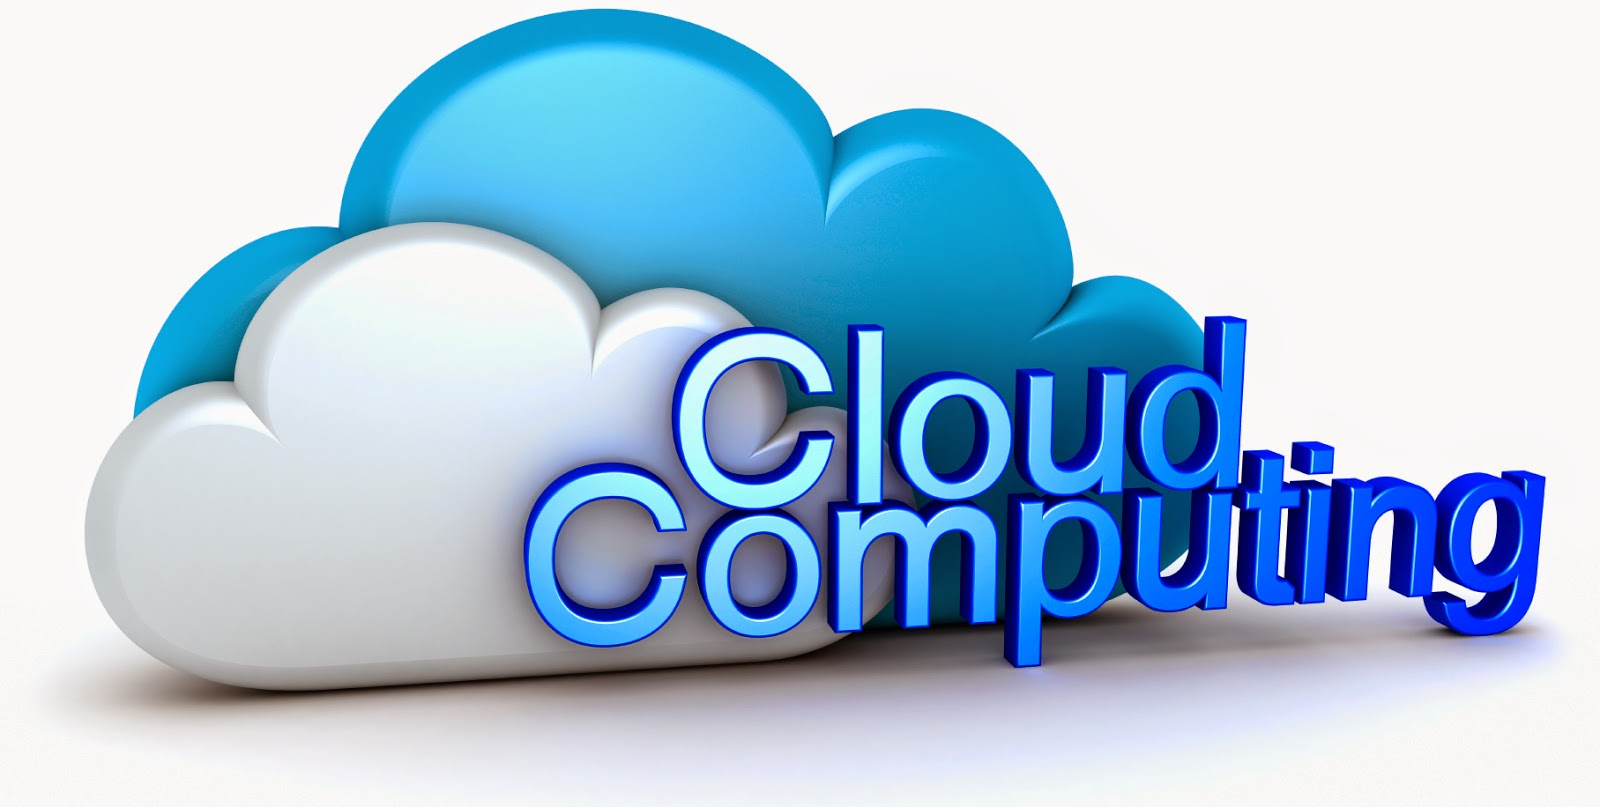 Cloud Computing - Sky Is the Limit